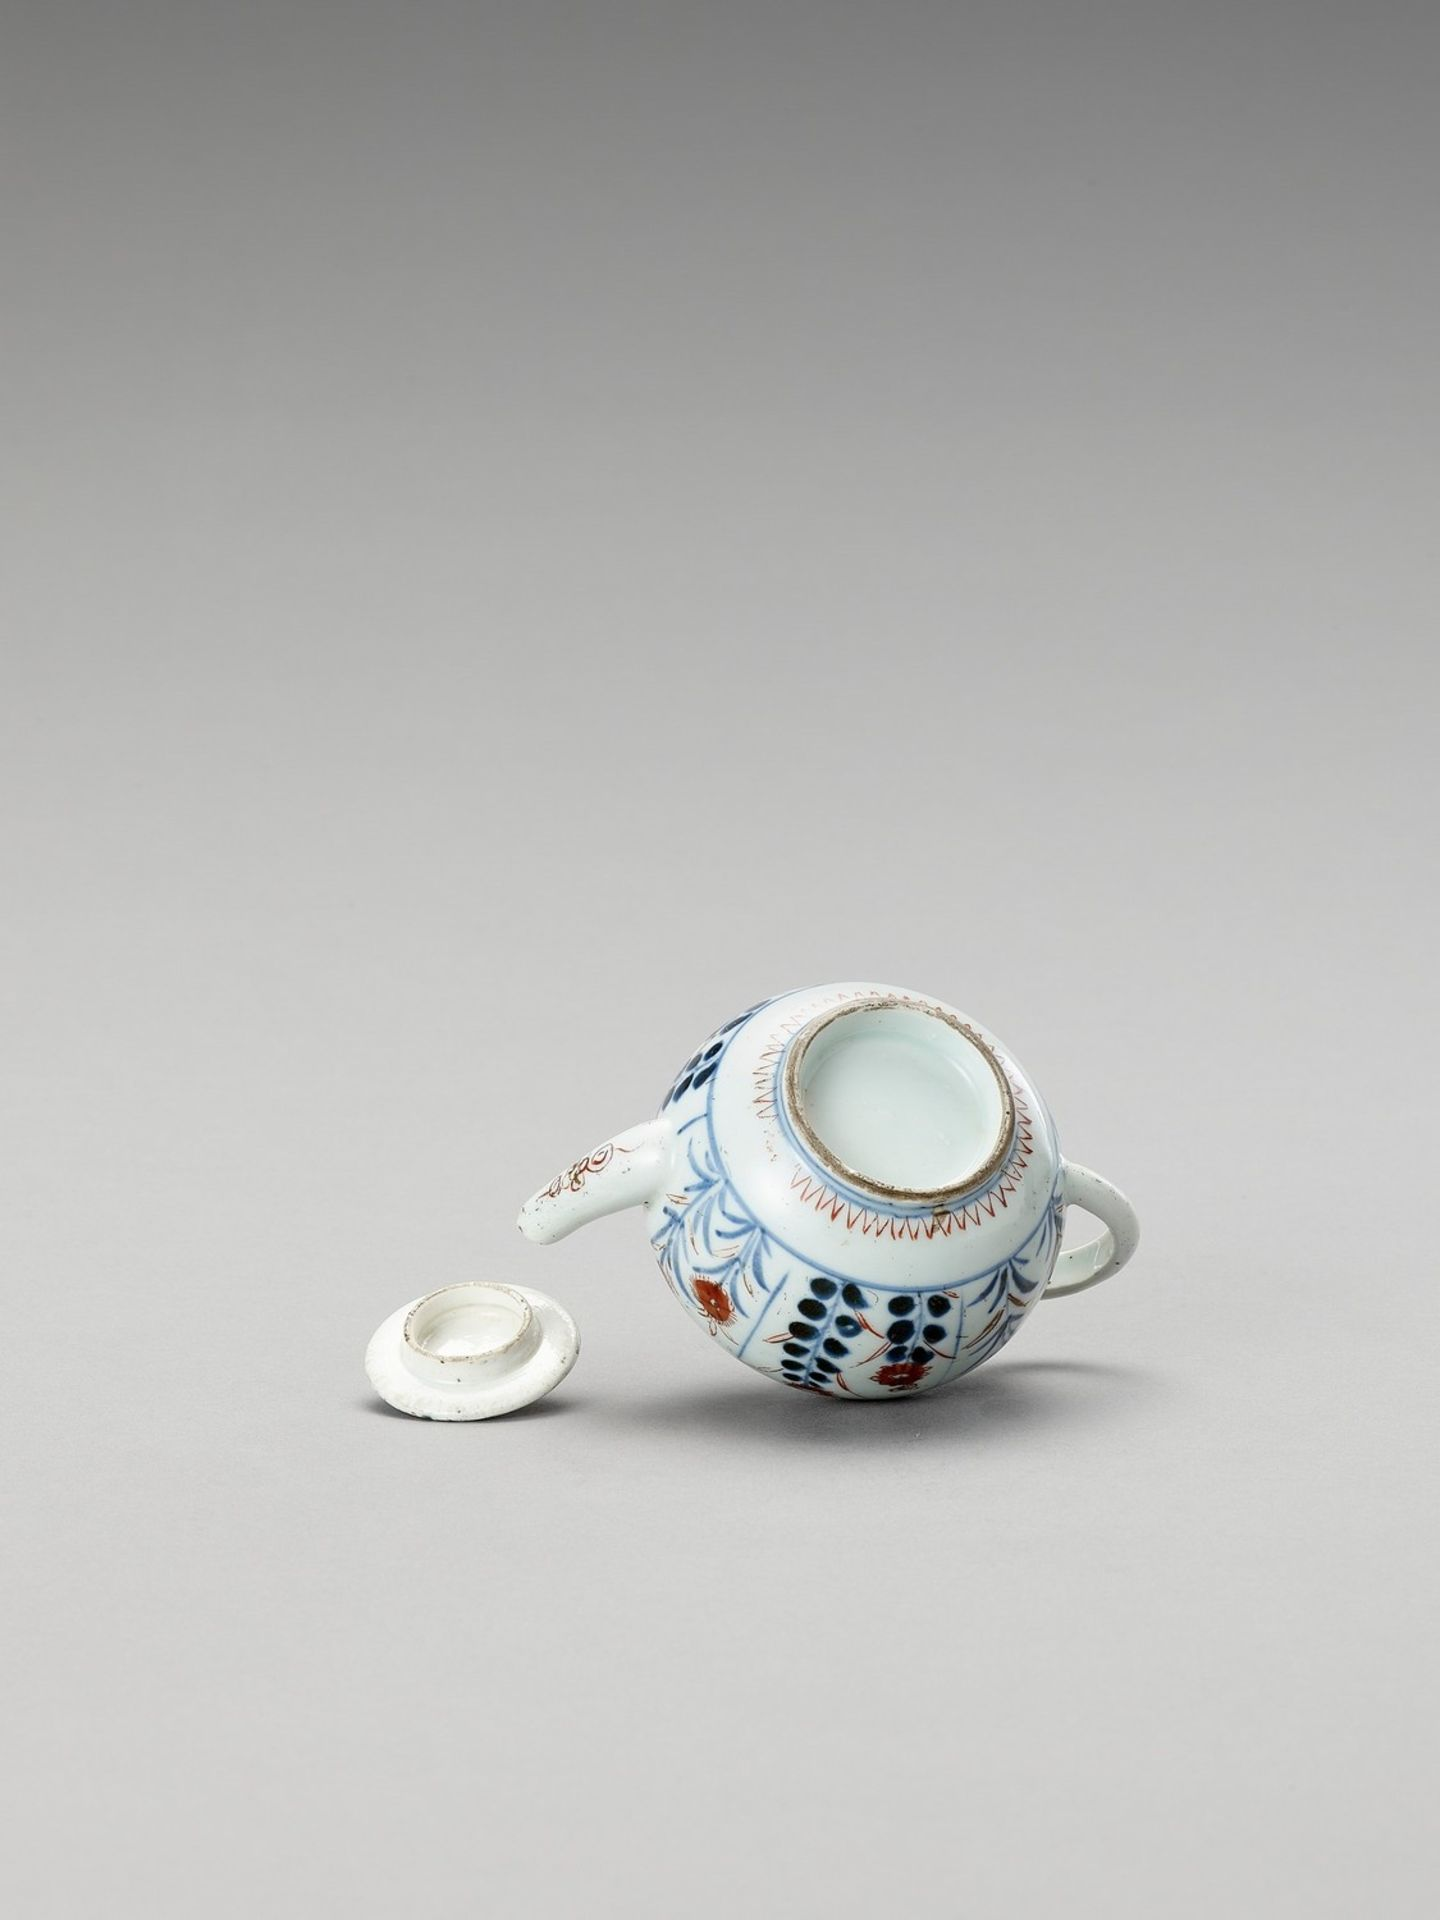 AN IMARI PORCELAIN TEAPOT WITH COVER - Image 5 of 6